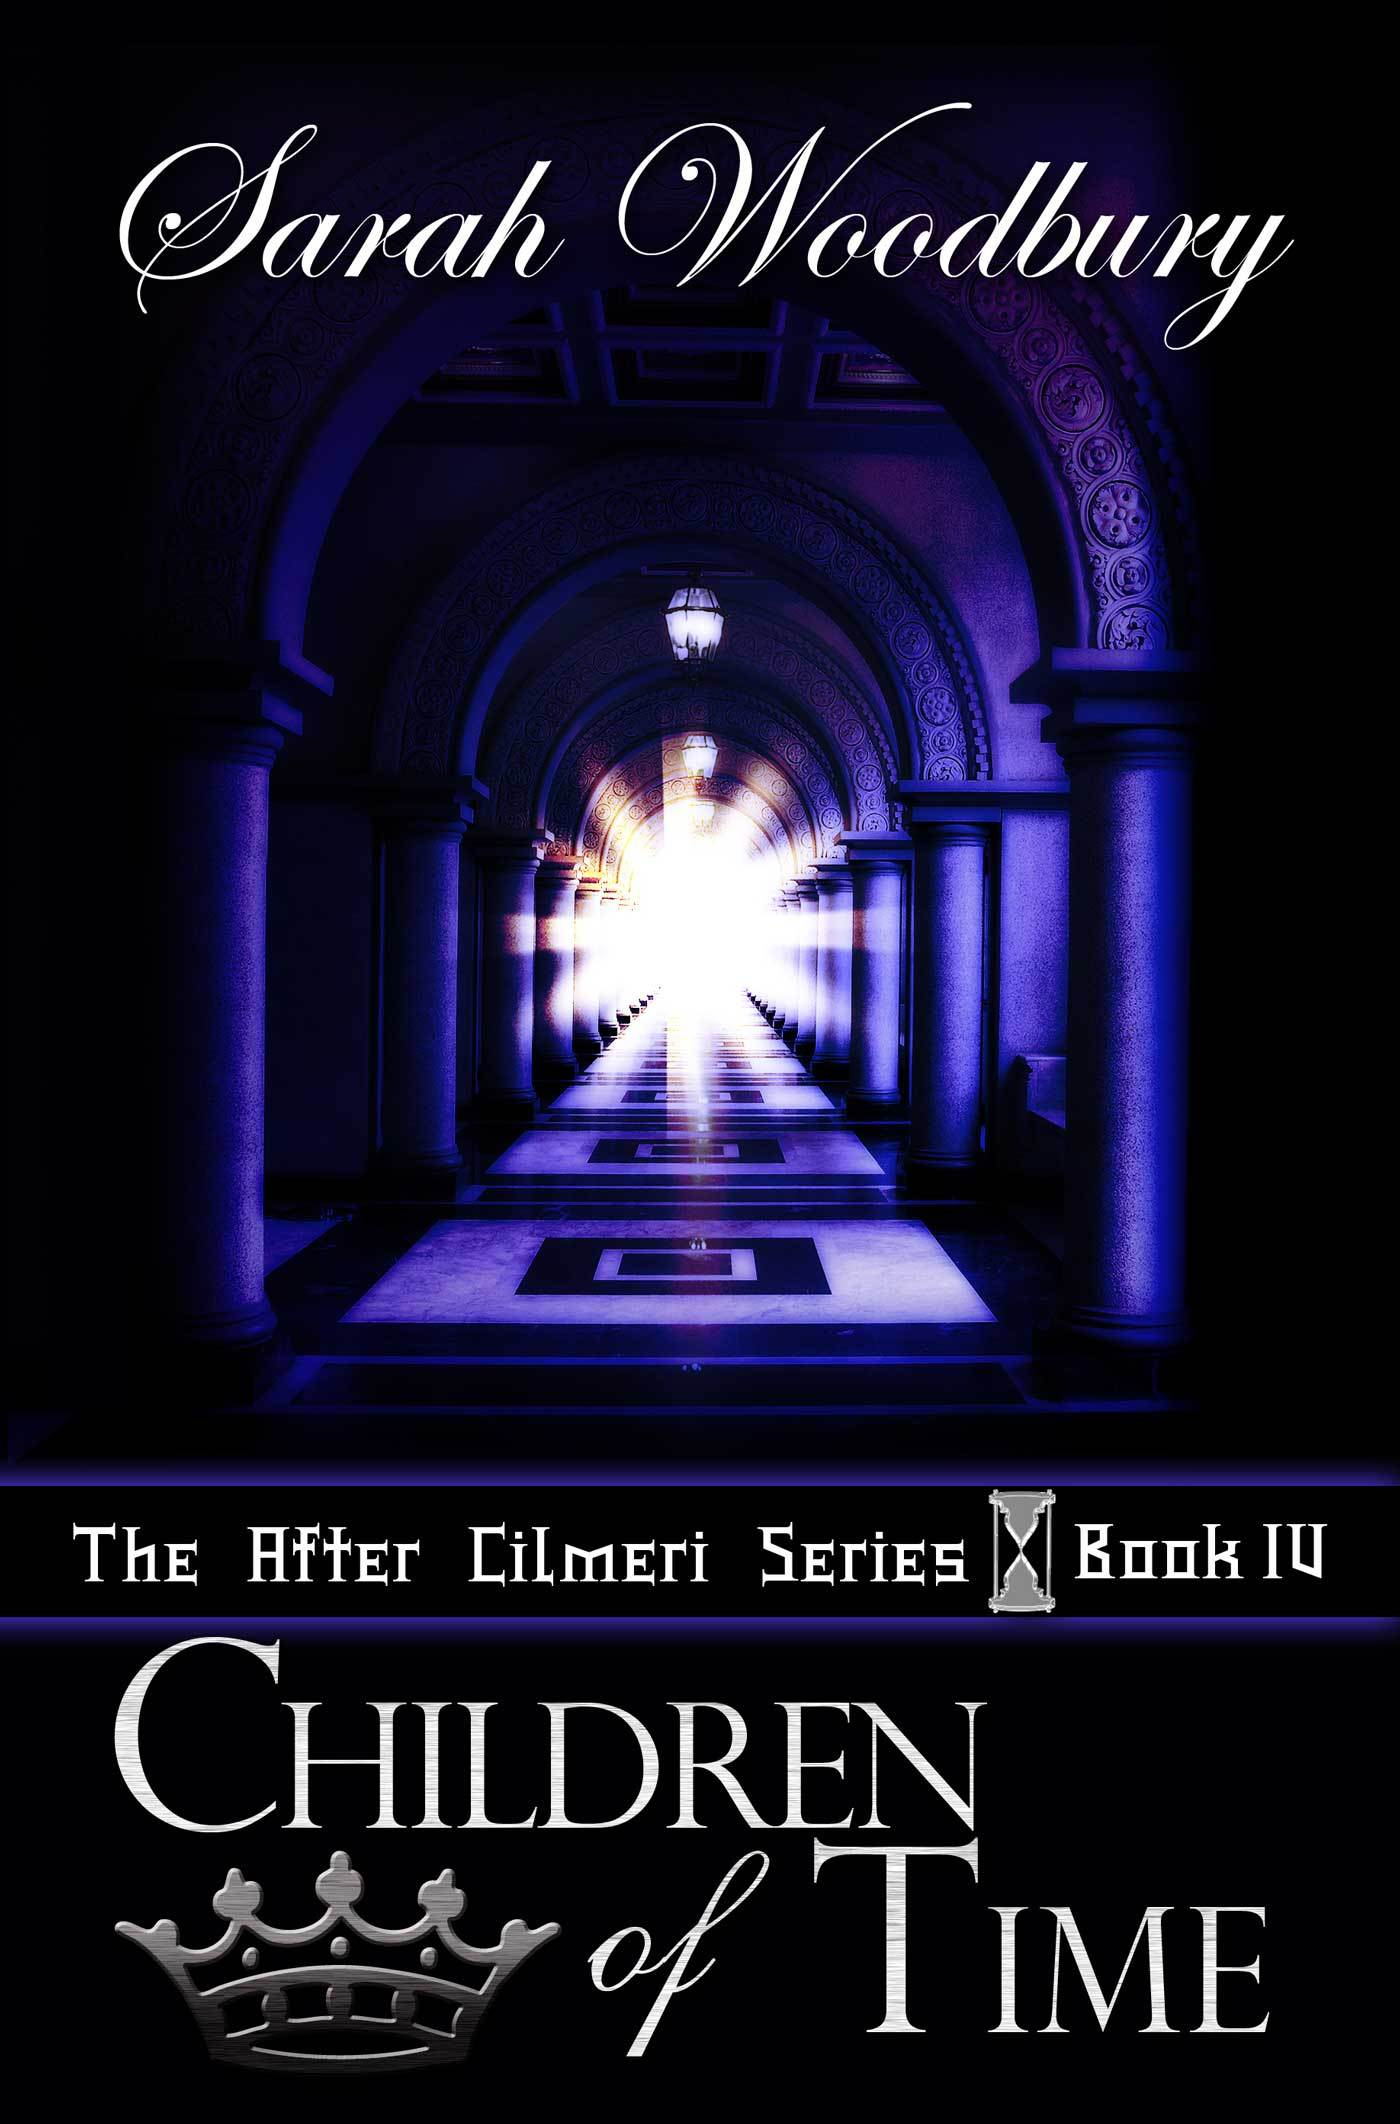 Children of Time (The After Cilmeri Series)